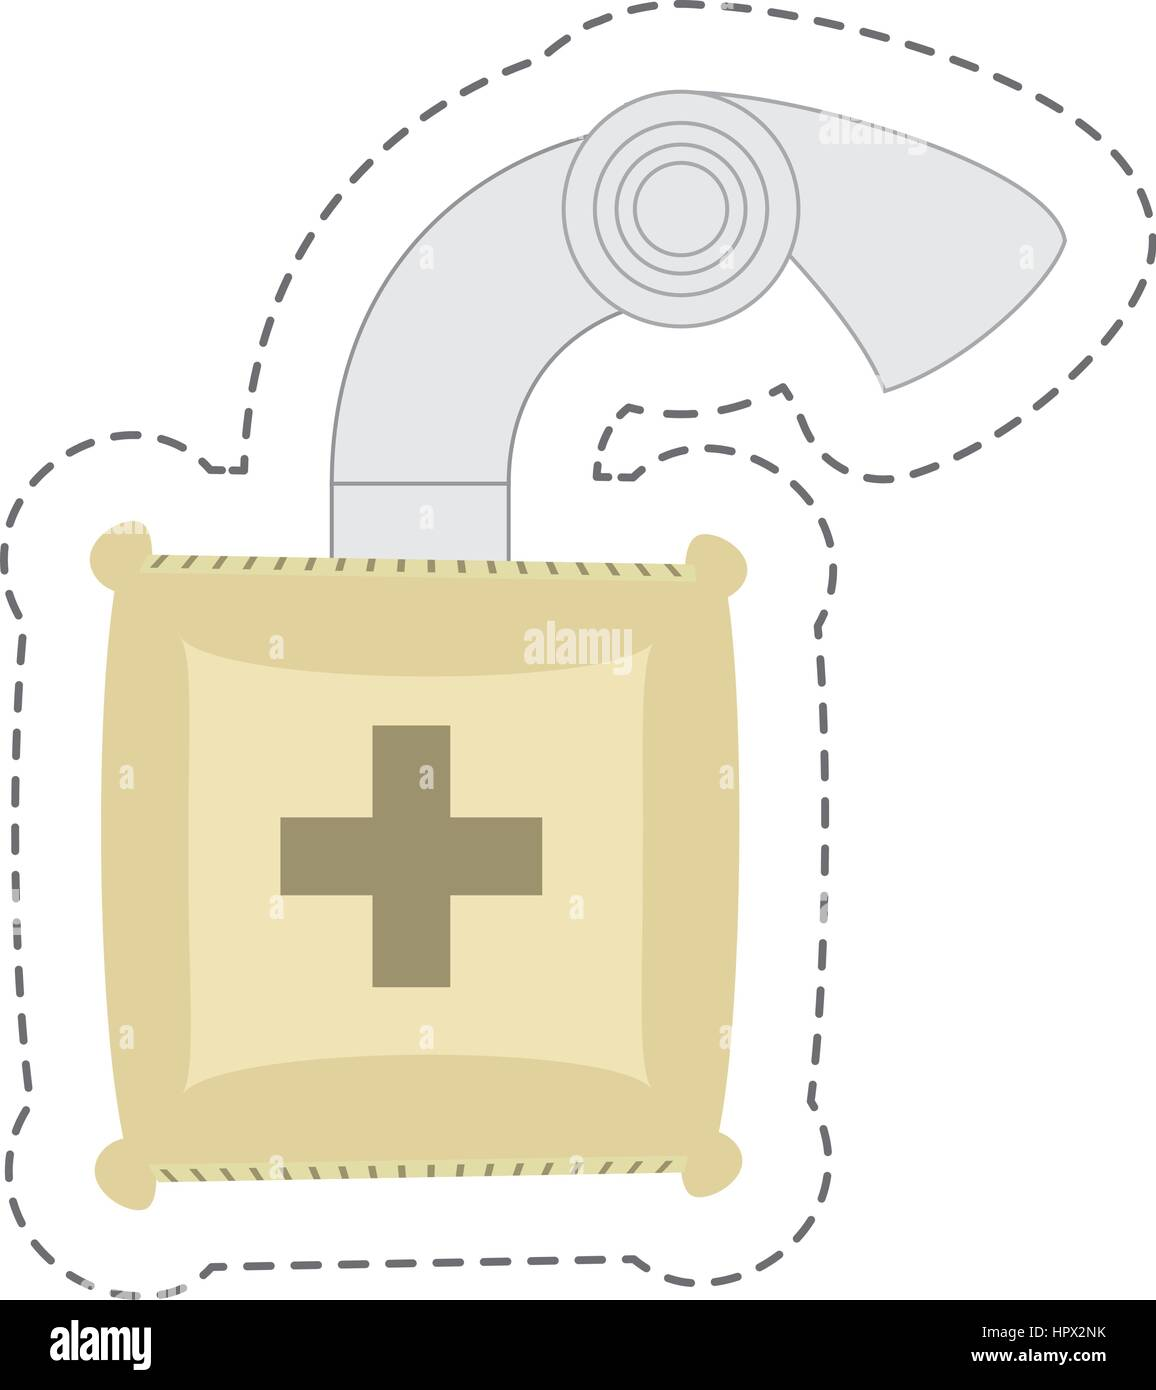 cartoon iv medicine saline bag - Stock Vector